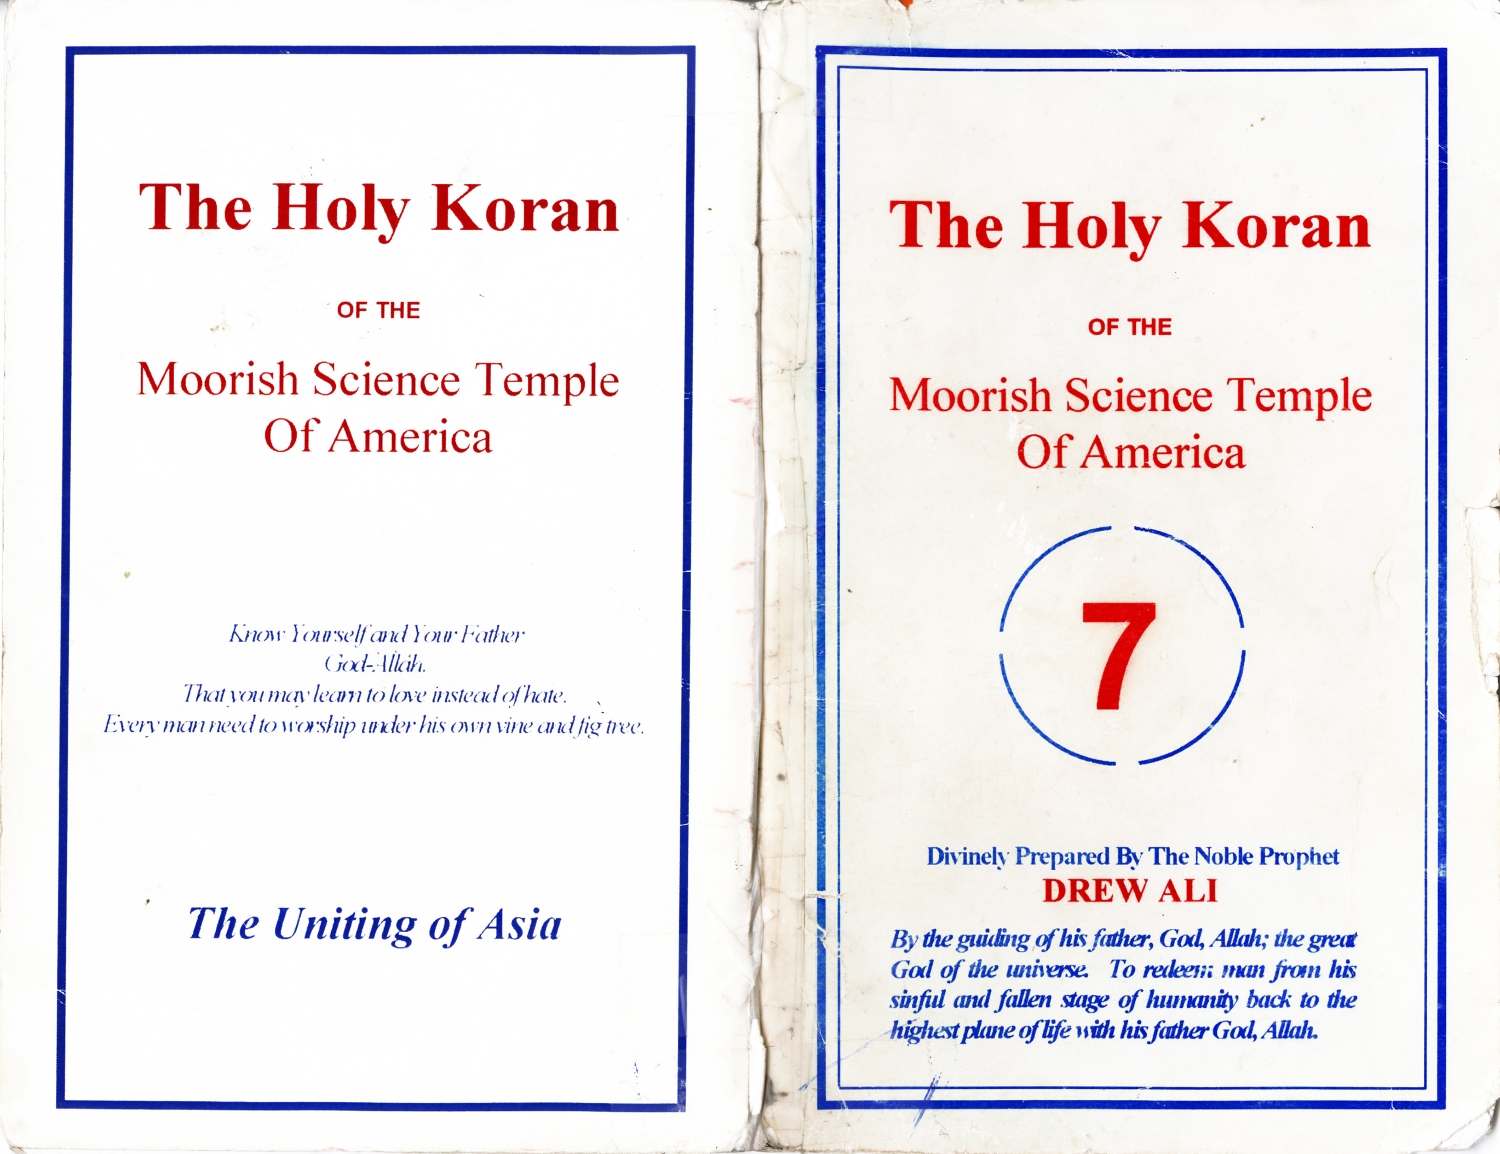 Mapping The Spirit—Unity in the Moorish Science Temple of